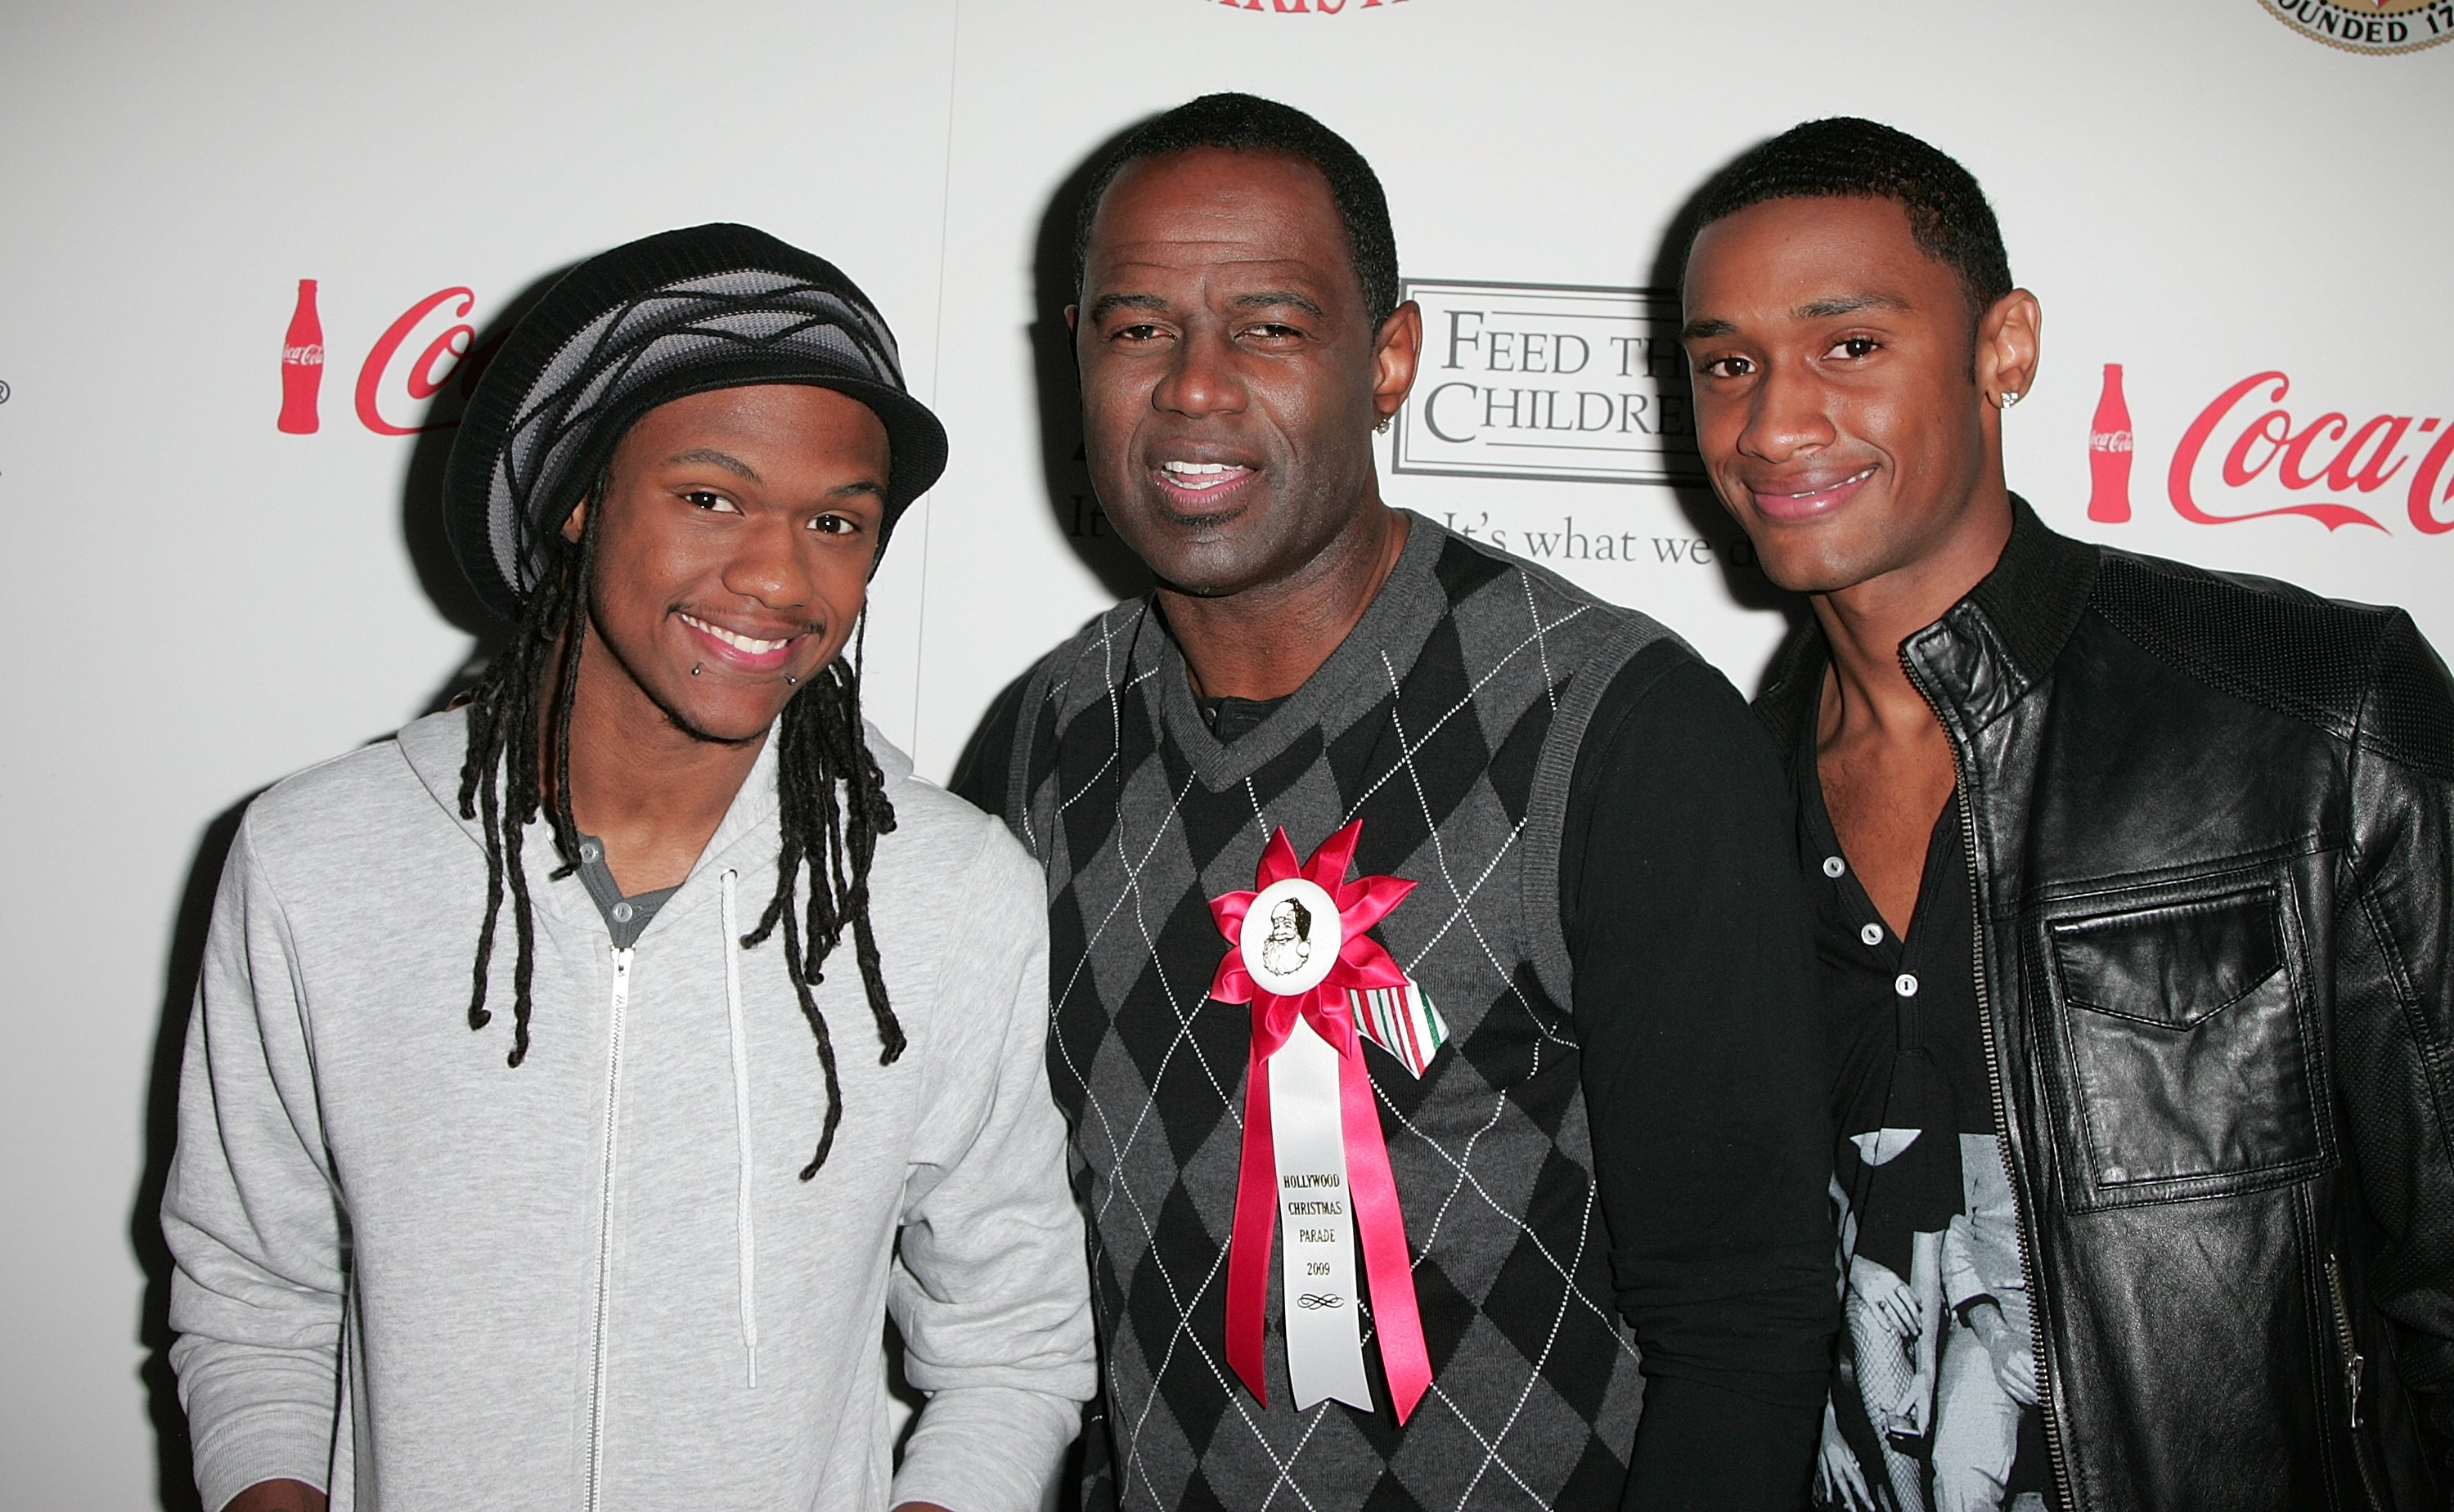 Brian McKnight flanked by his sons Niko (L) and BJ (R) at the Hollywood Christmas Parade in California on Nov. 29, 2009 | Photo: Getty Images